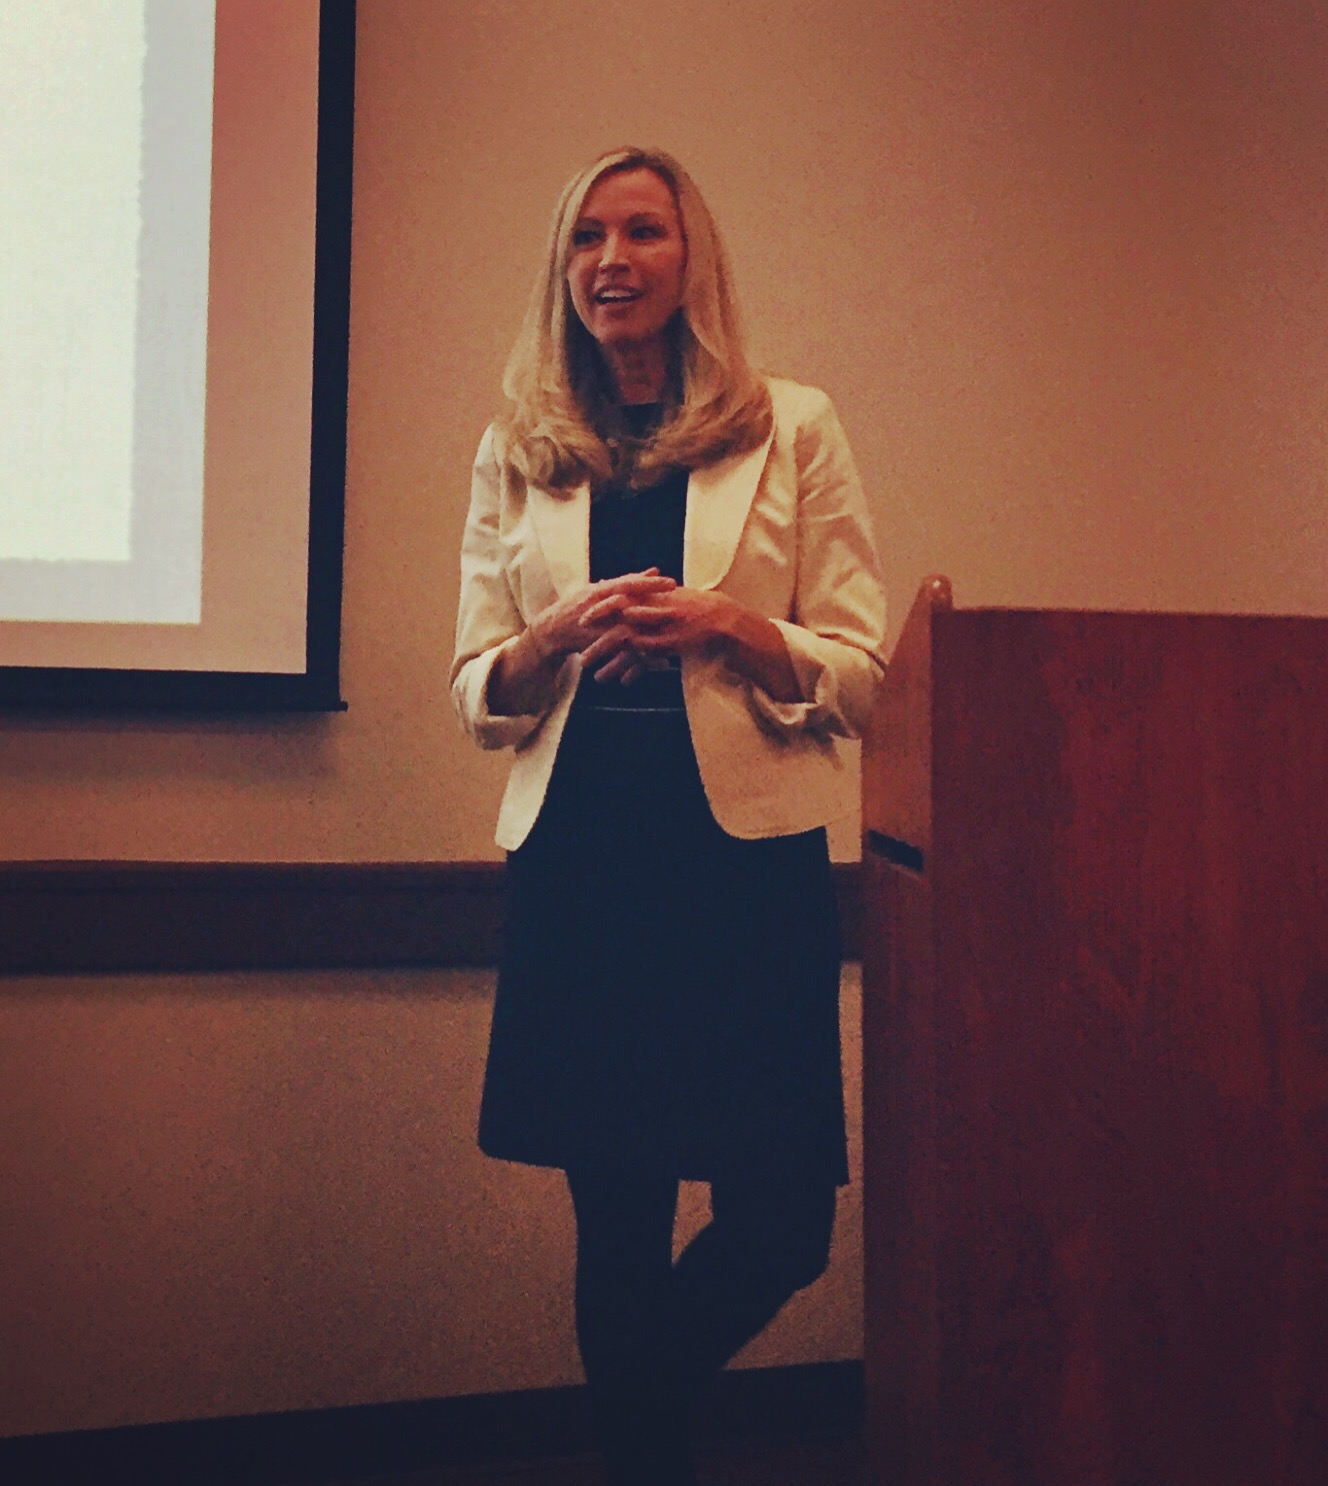 """Cranberry Township Library - """"Meet the Author"""" event at Kim's local library. Kim spoke about 360 Health and cancer prevention."""